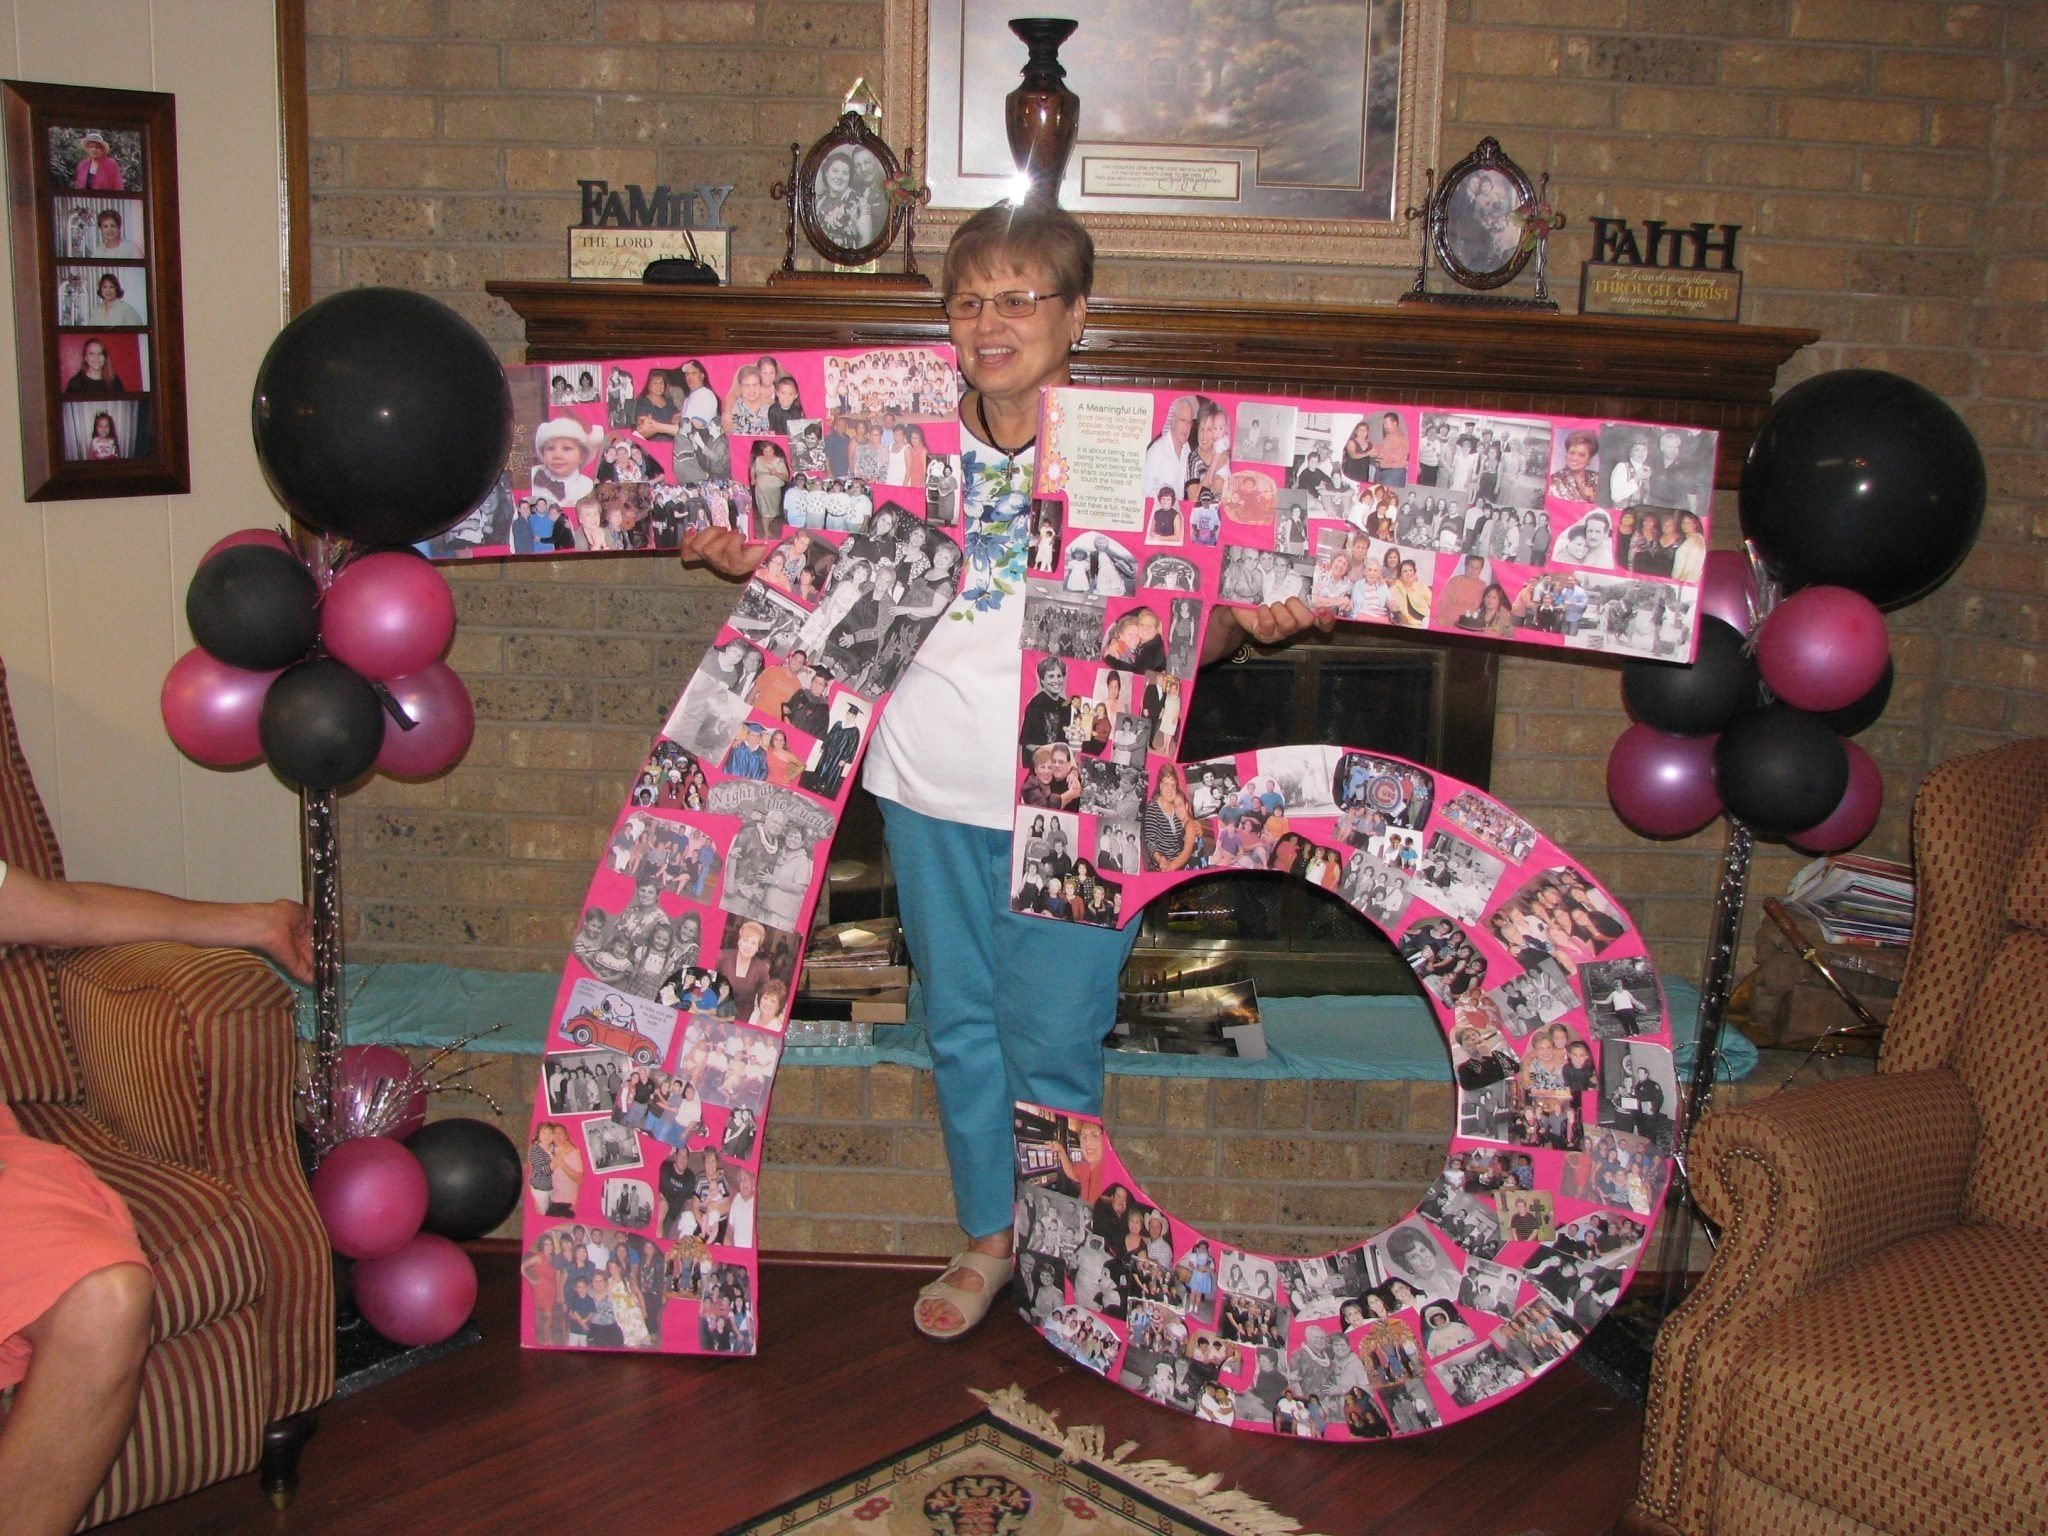 themes birthday : 75th birthday party ideas for mom with 75th